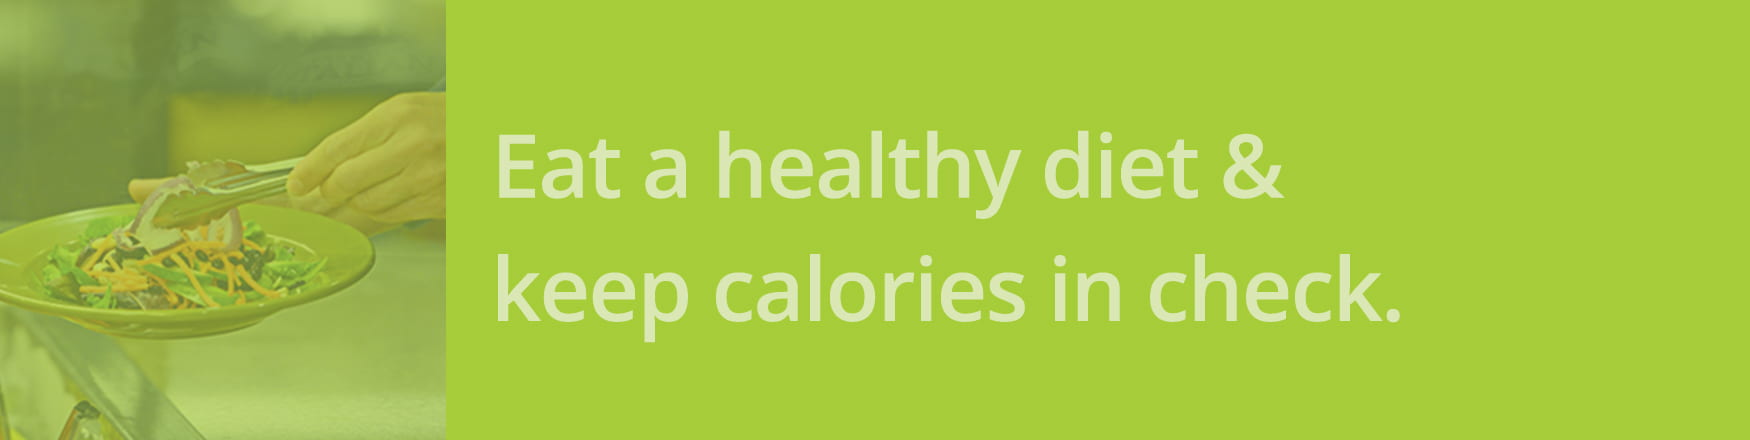 Eat a healthy diet and keep calories in check.